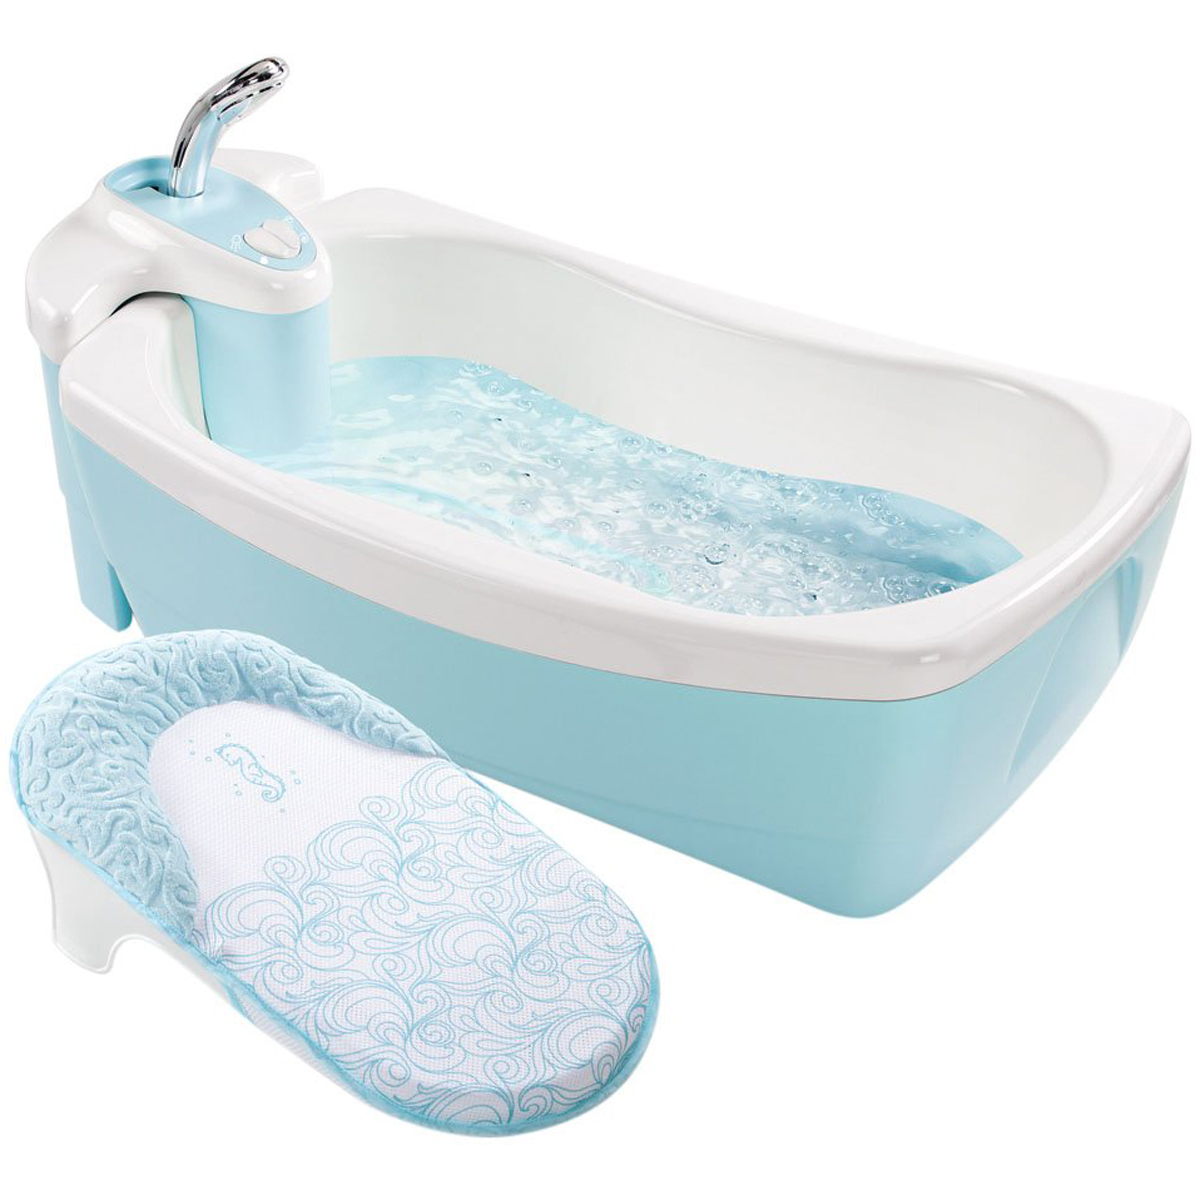 Chau tam Spa mau xanh co voi hoa sen Summer 18863-  Lil Luxuries Tub